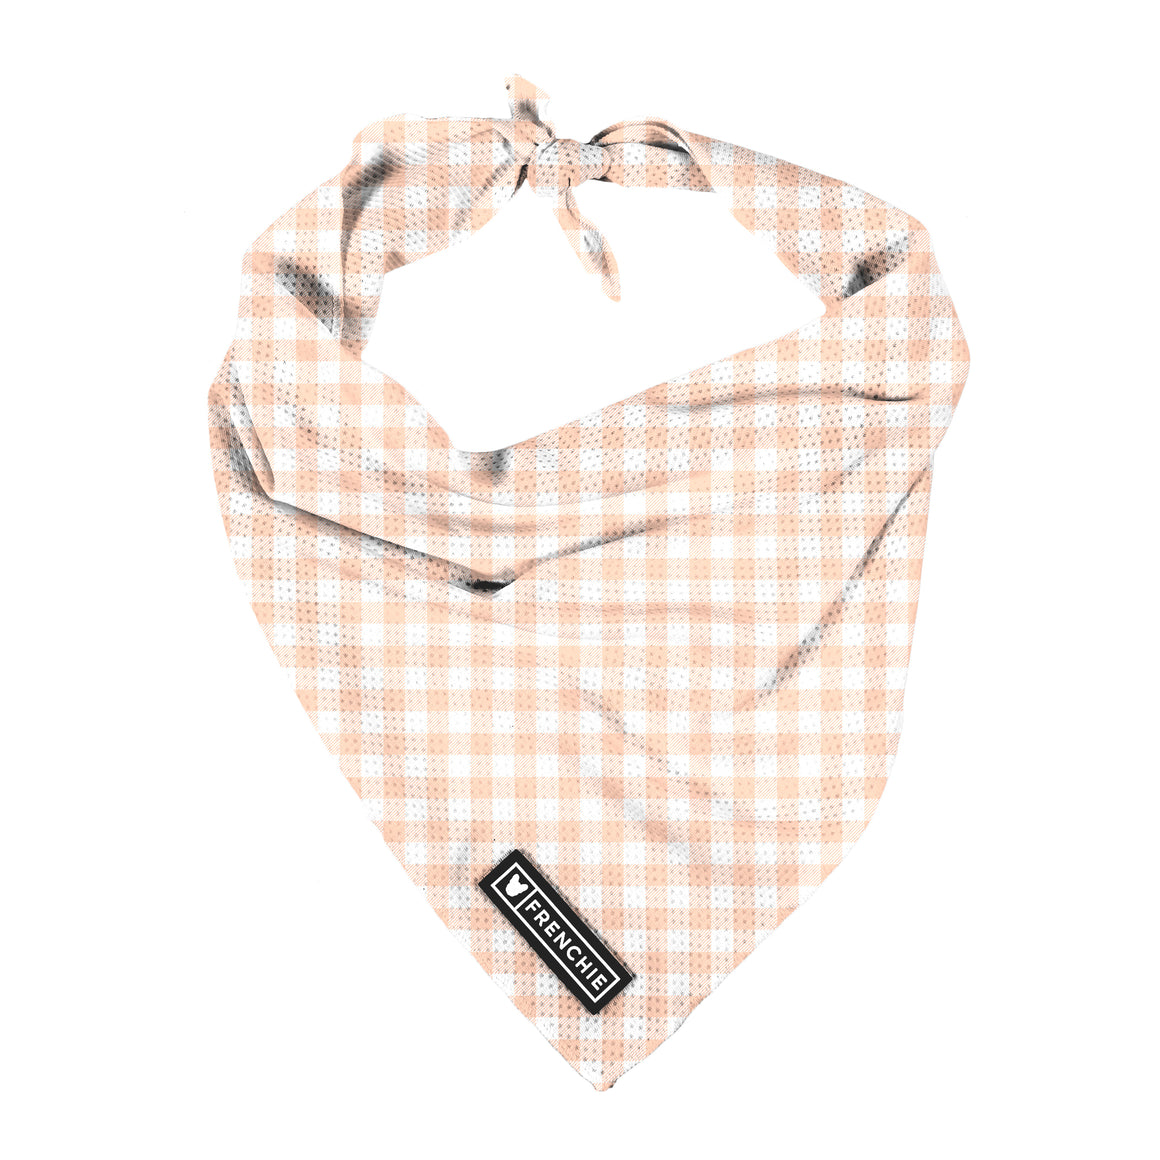 Frenchie Cooling Bandana- Peach Gingham